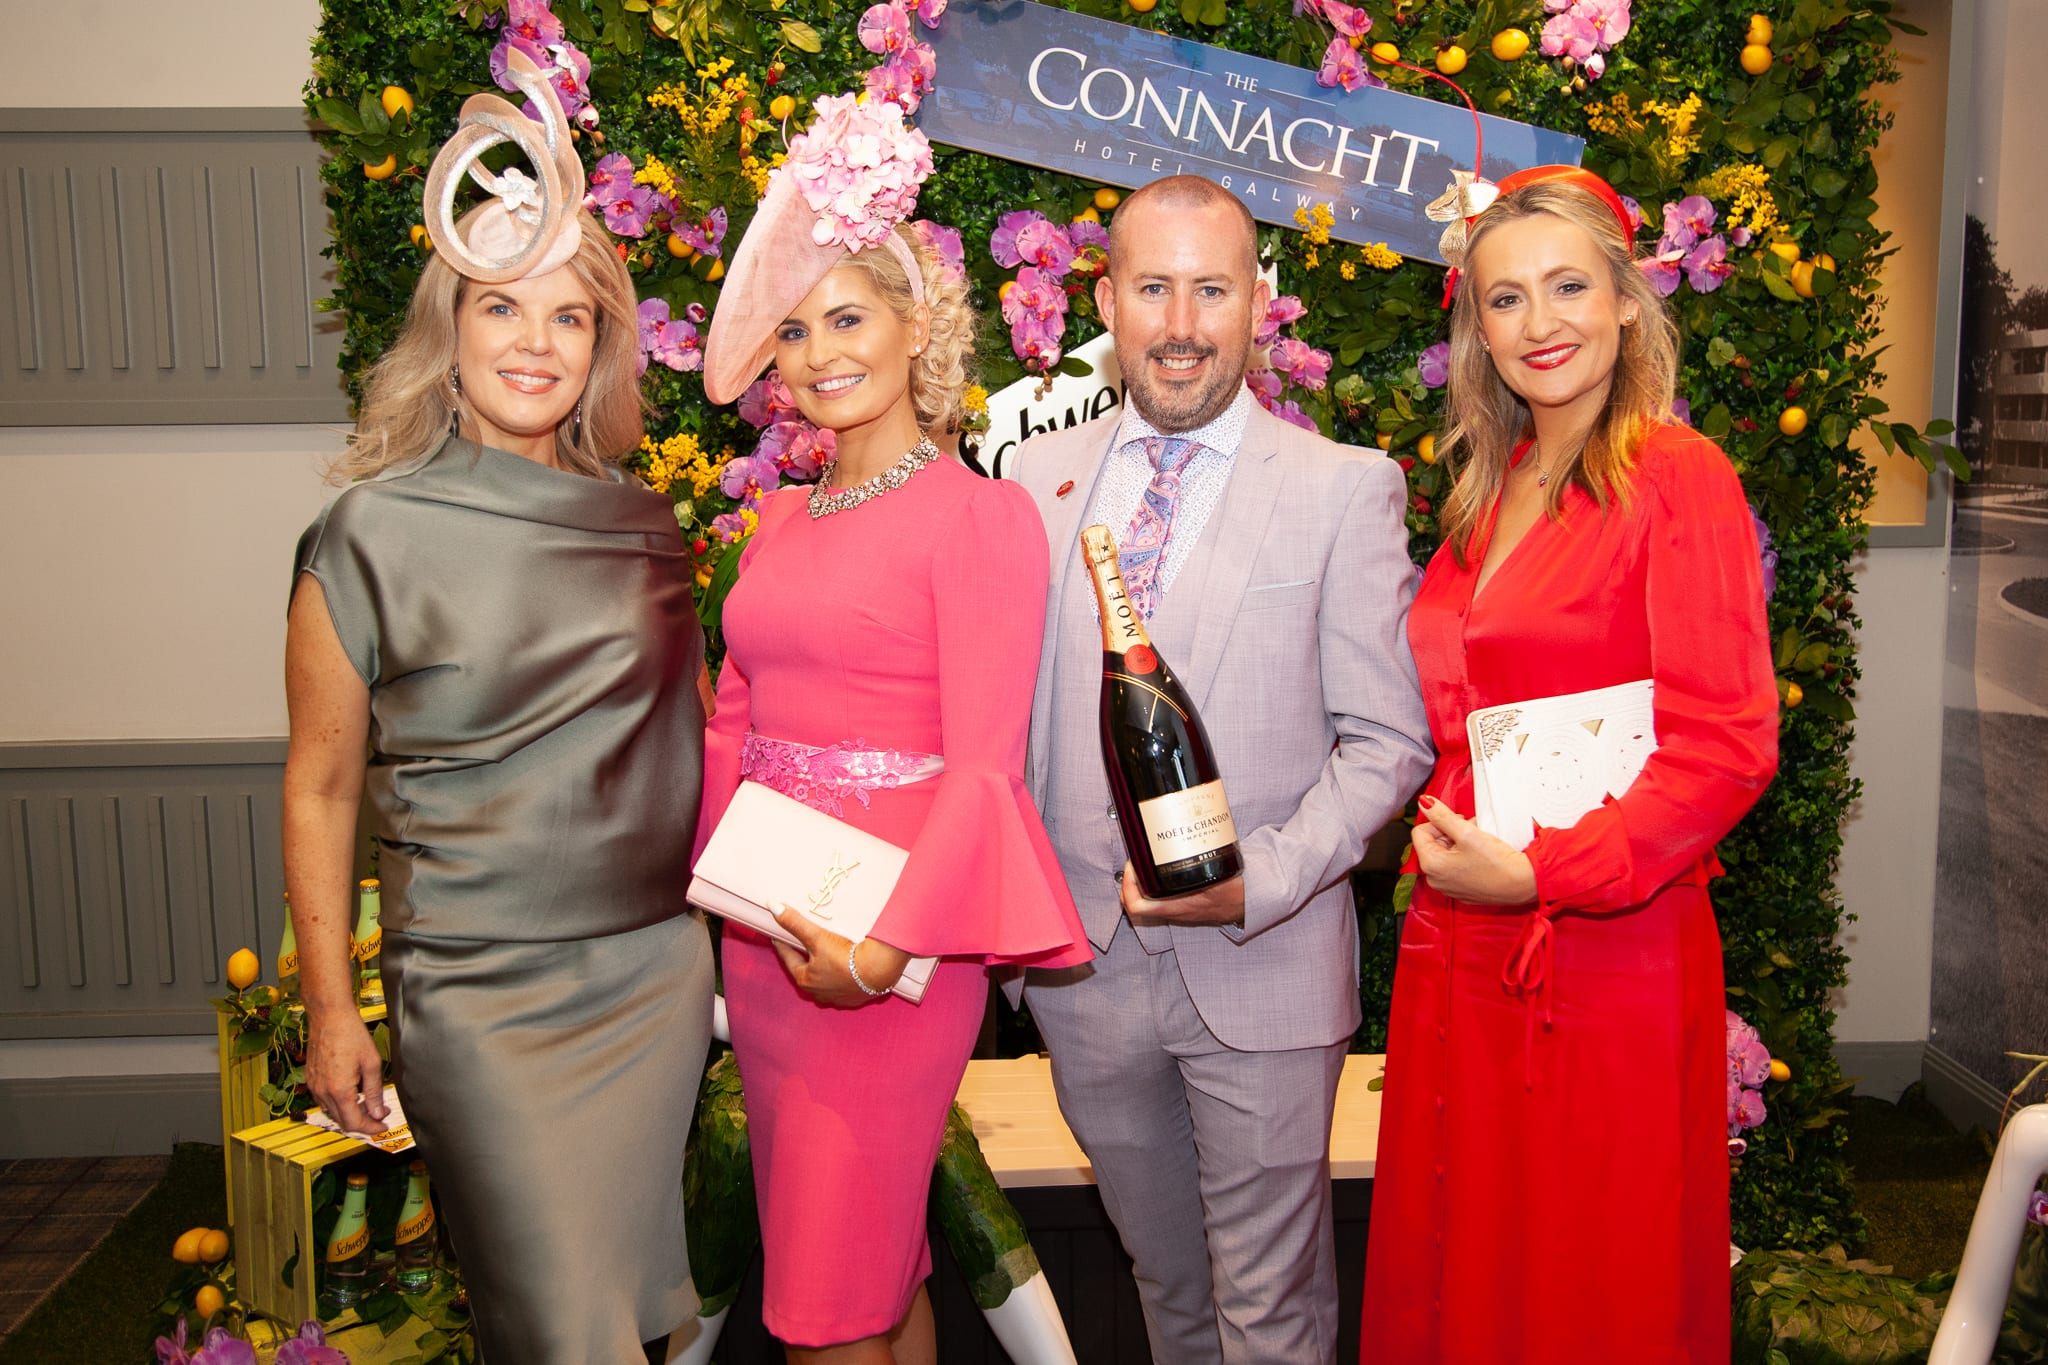 The best fashion, food, and good causes from race week with the Connacht Hospitality Group